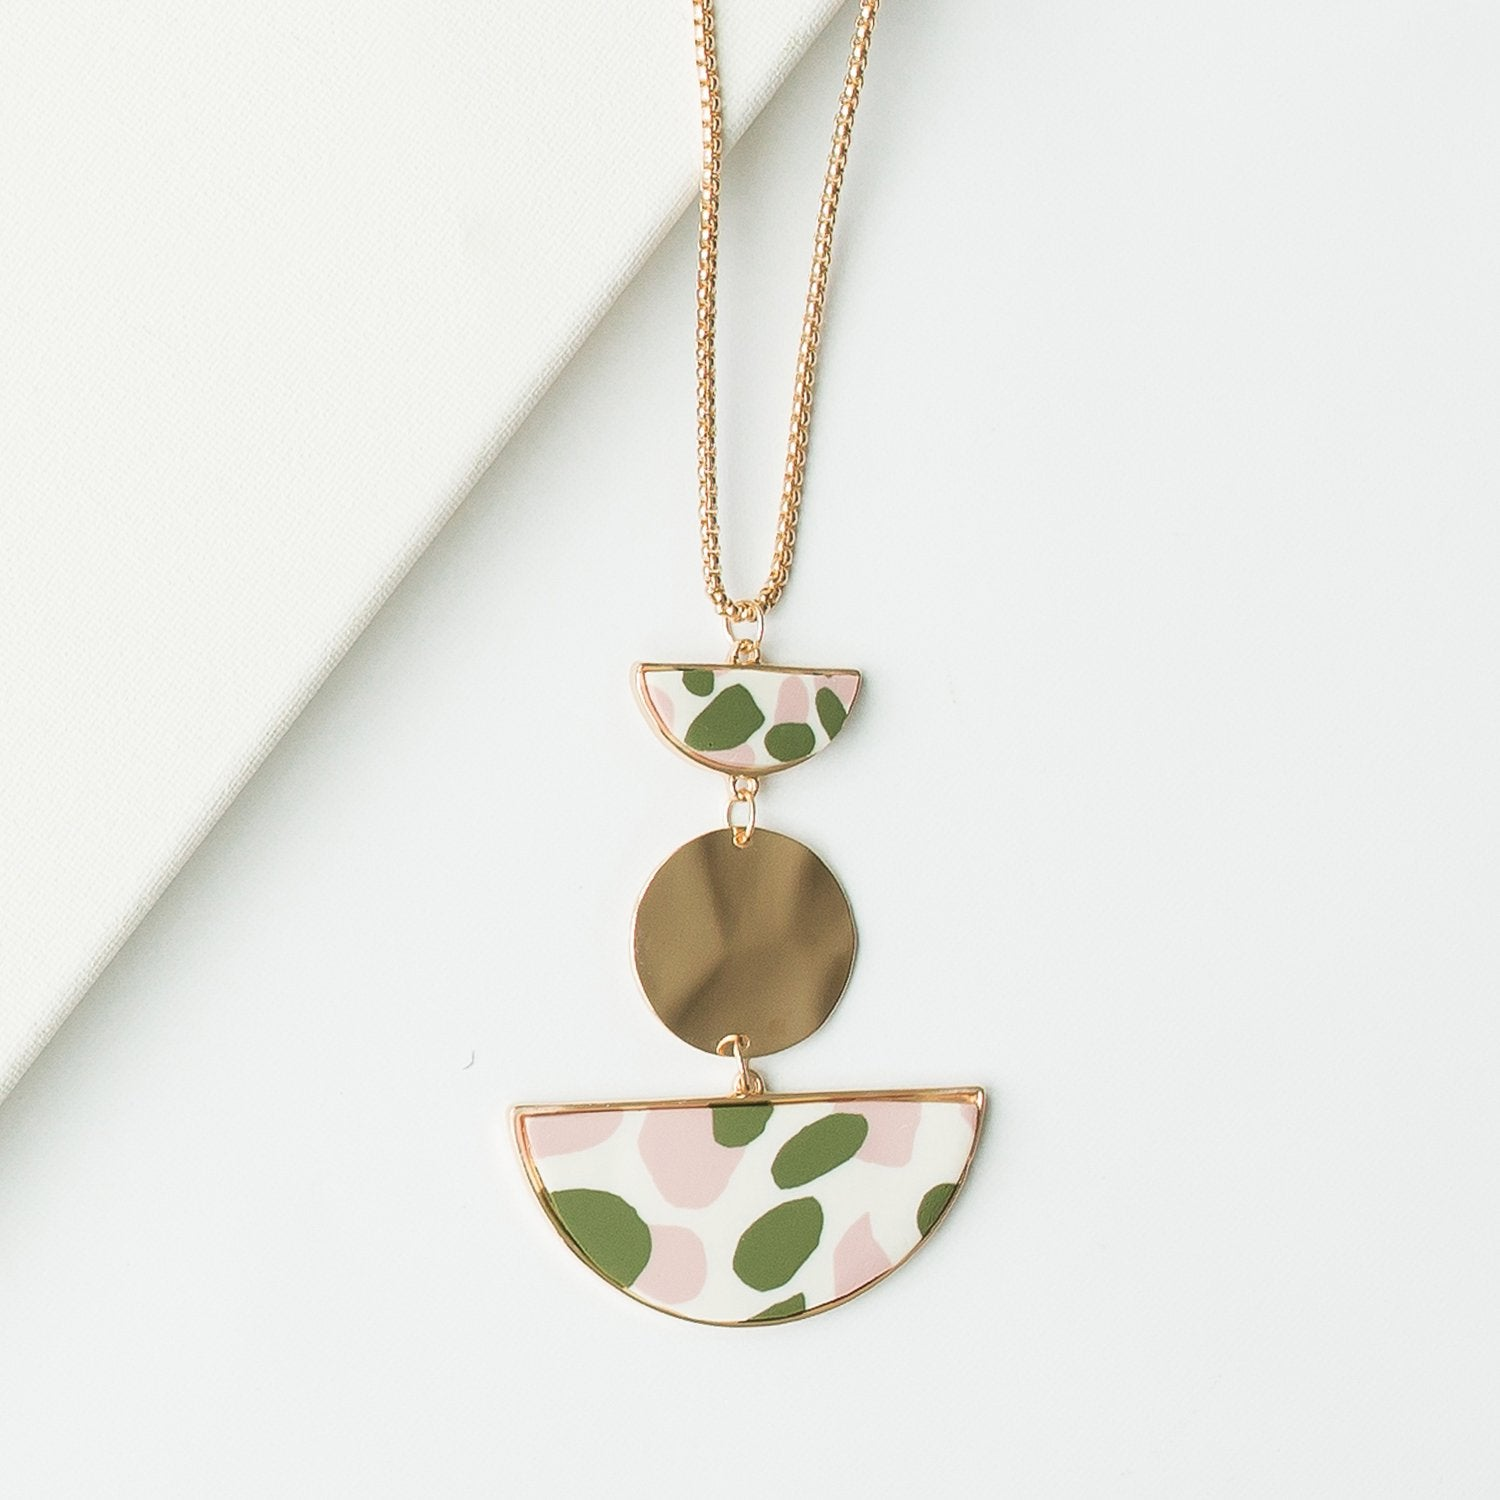 Michelle McDowell Shea Necklace - Blush